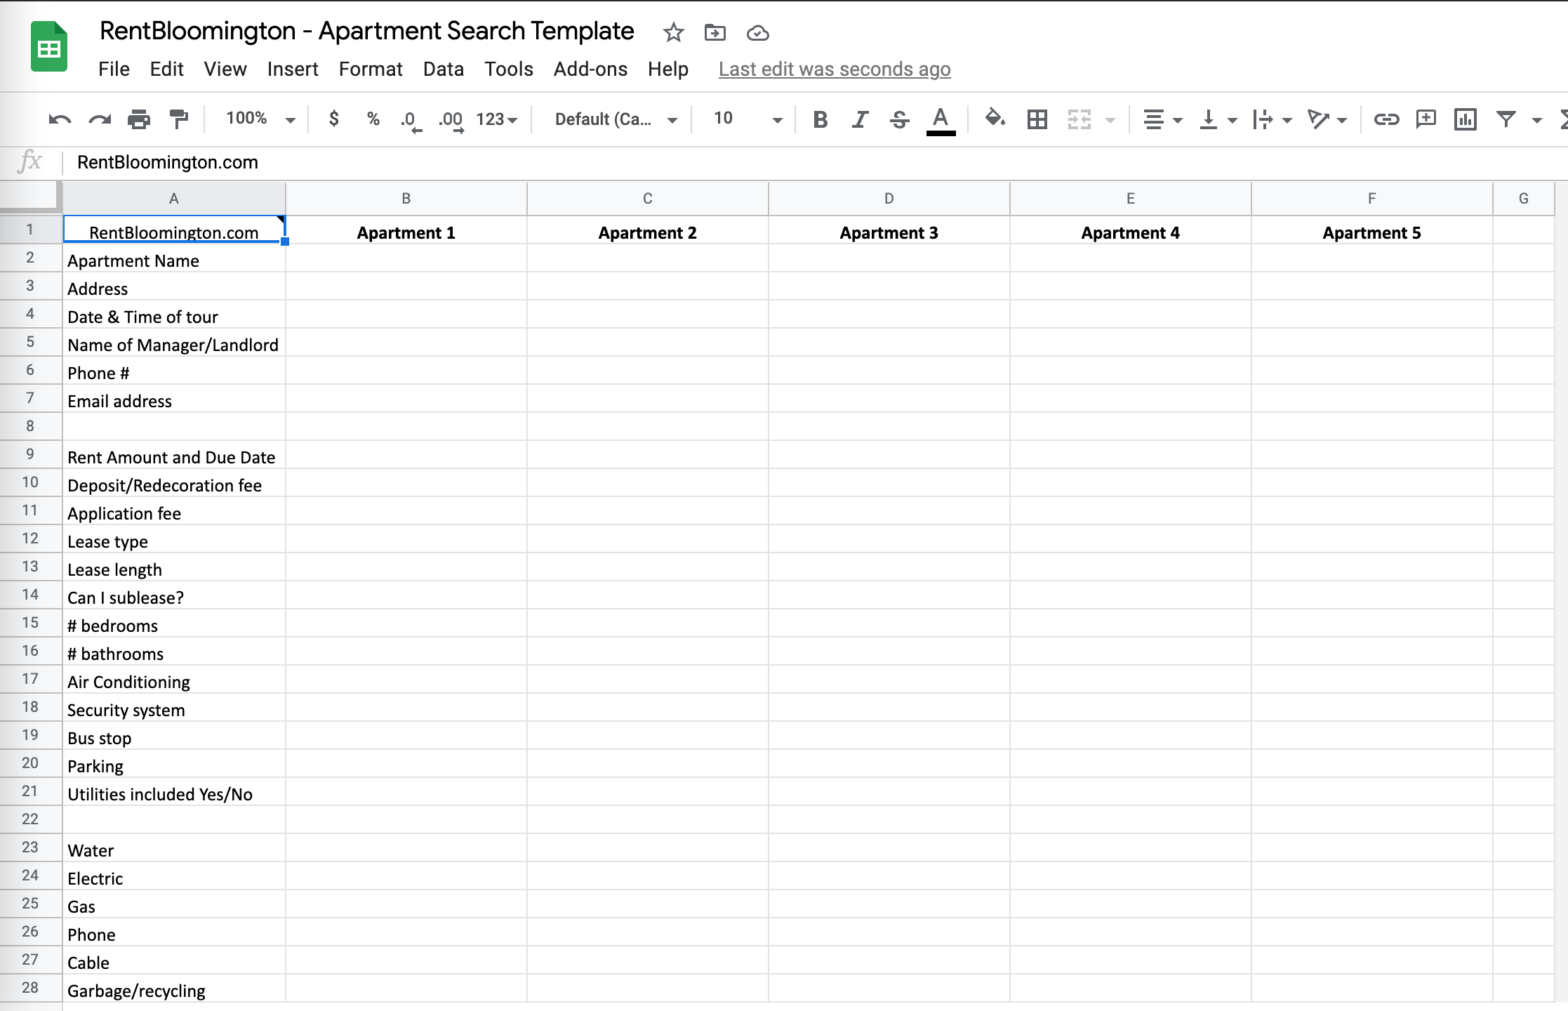 Rent Bloomington - Apartment Search Template Google Spreadsheet